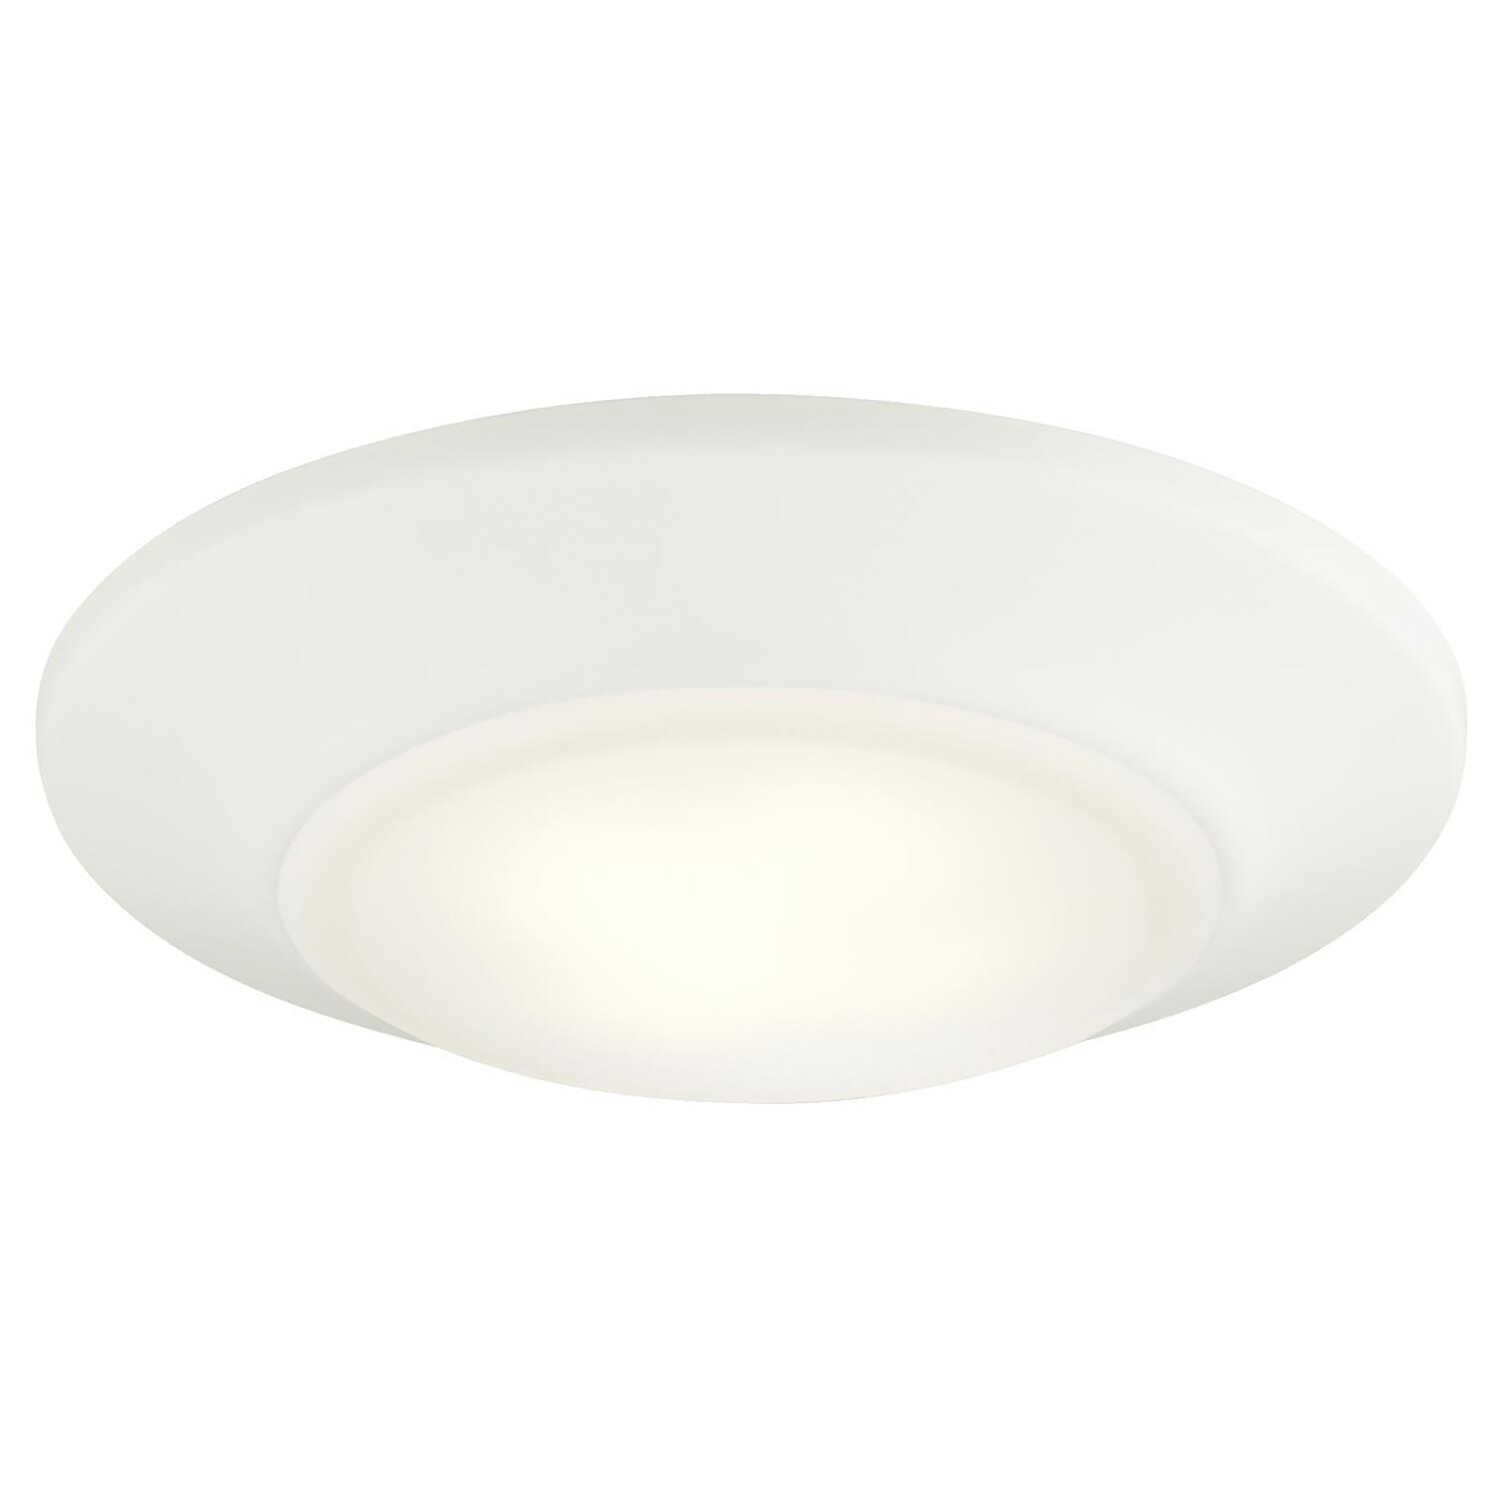 Westinghouse  White  3.875 in. W Steel  LED  Recessed Light Fixture  12 watts